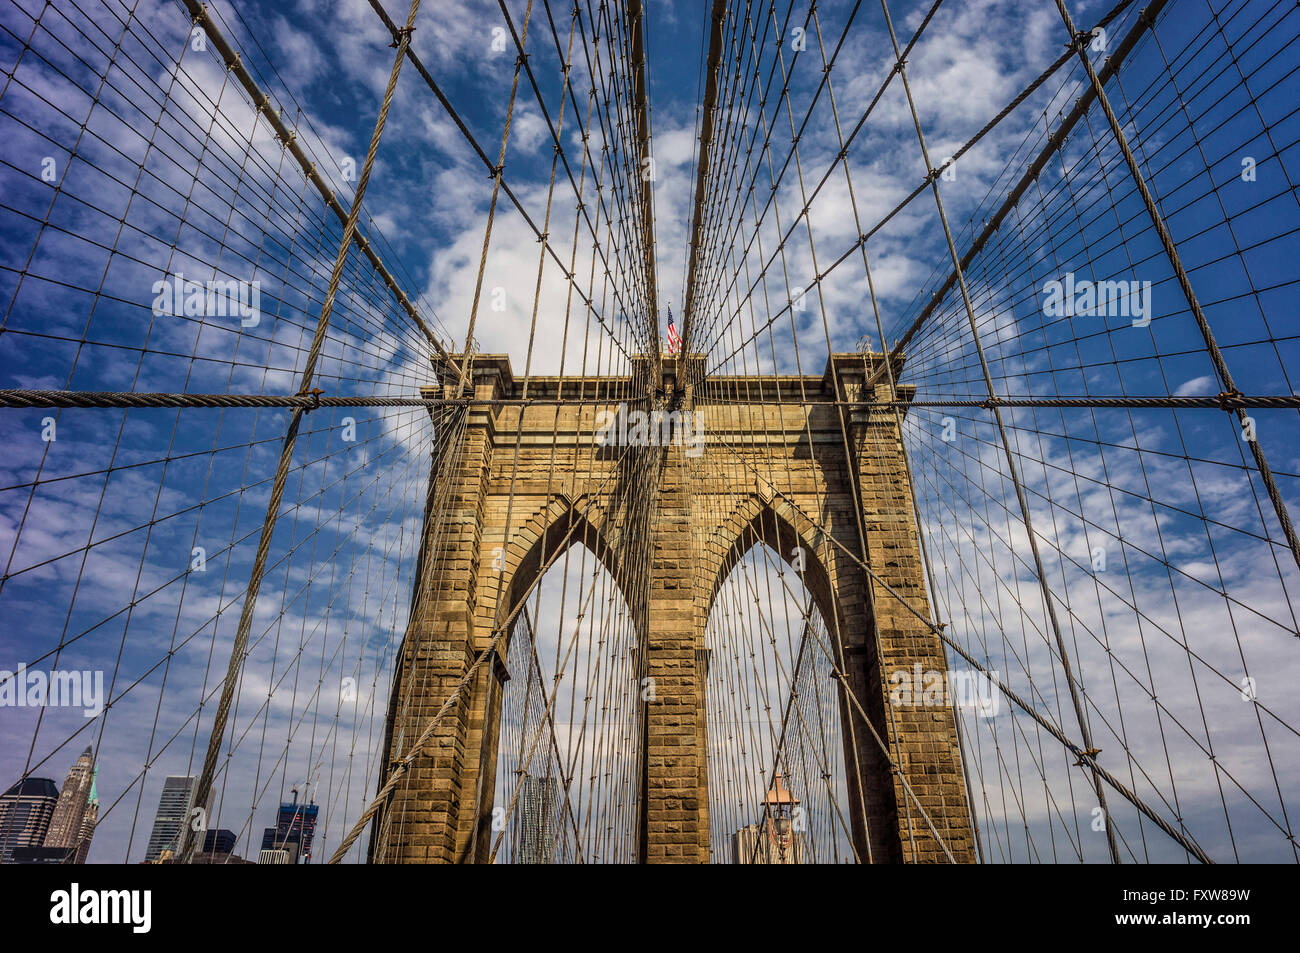 Brooklynbridge, New York, USA Stockbild